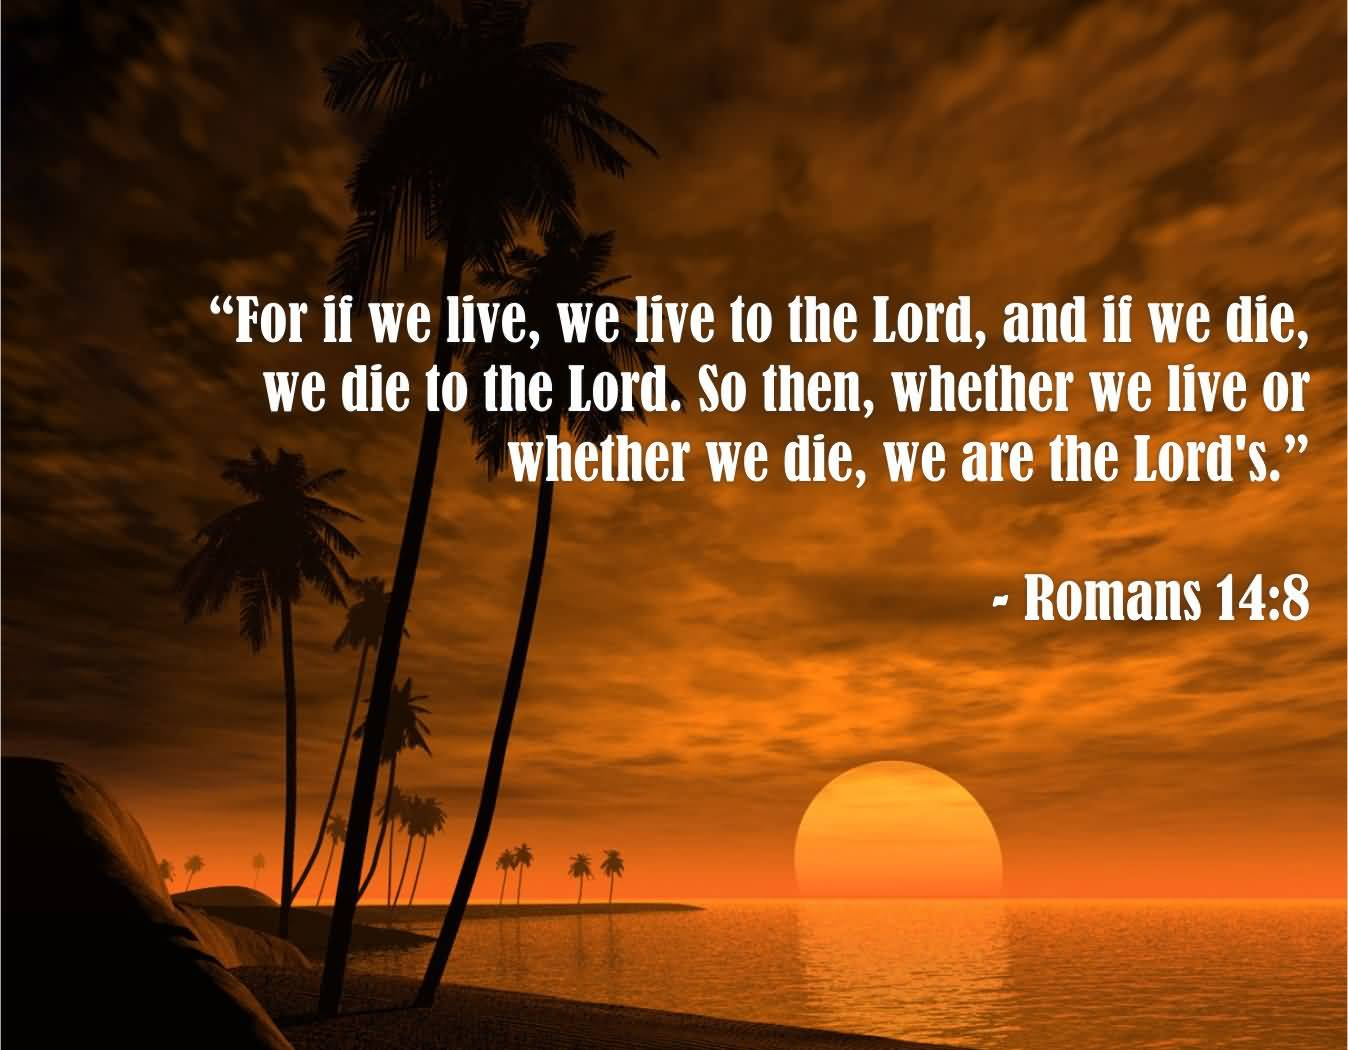 Quotes About Life And Death Quotes About Life And Death Bible 14  Quotesbae